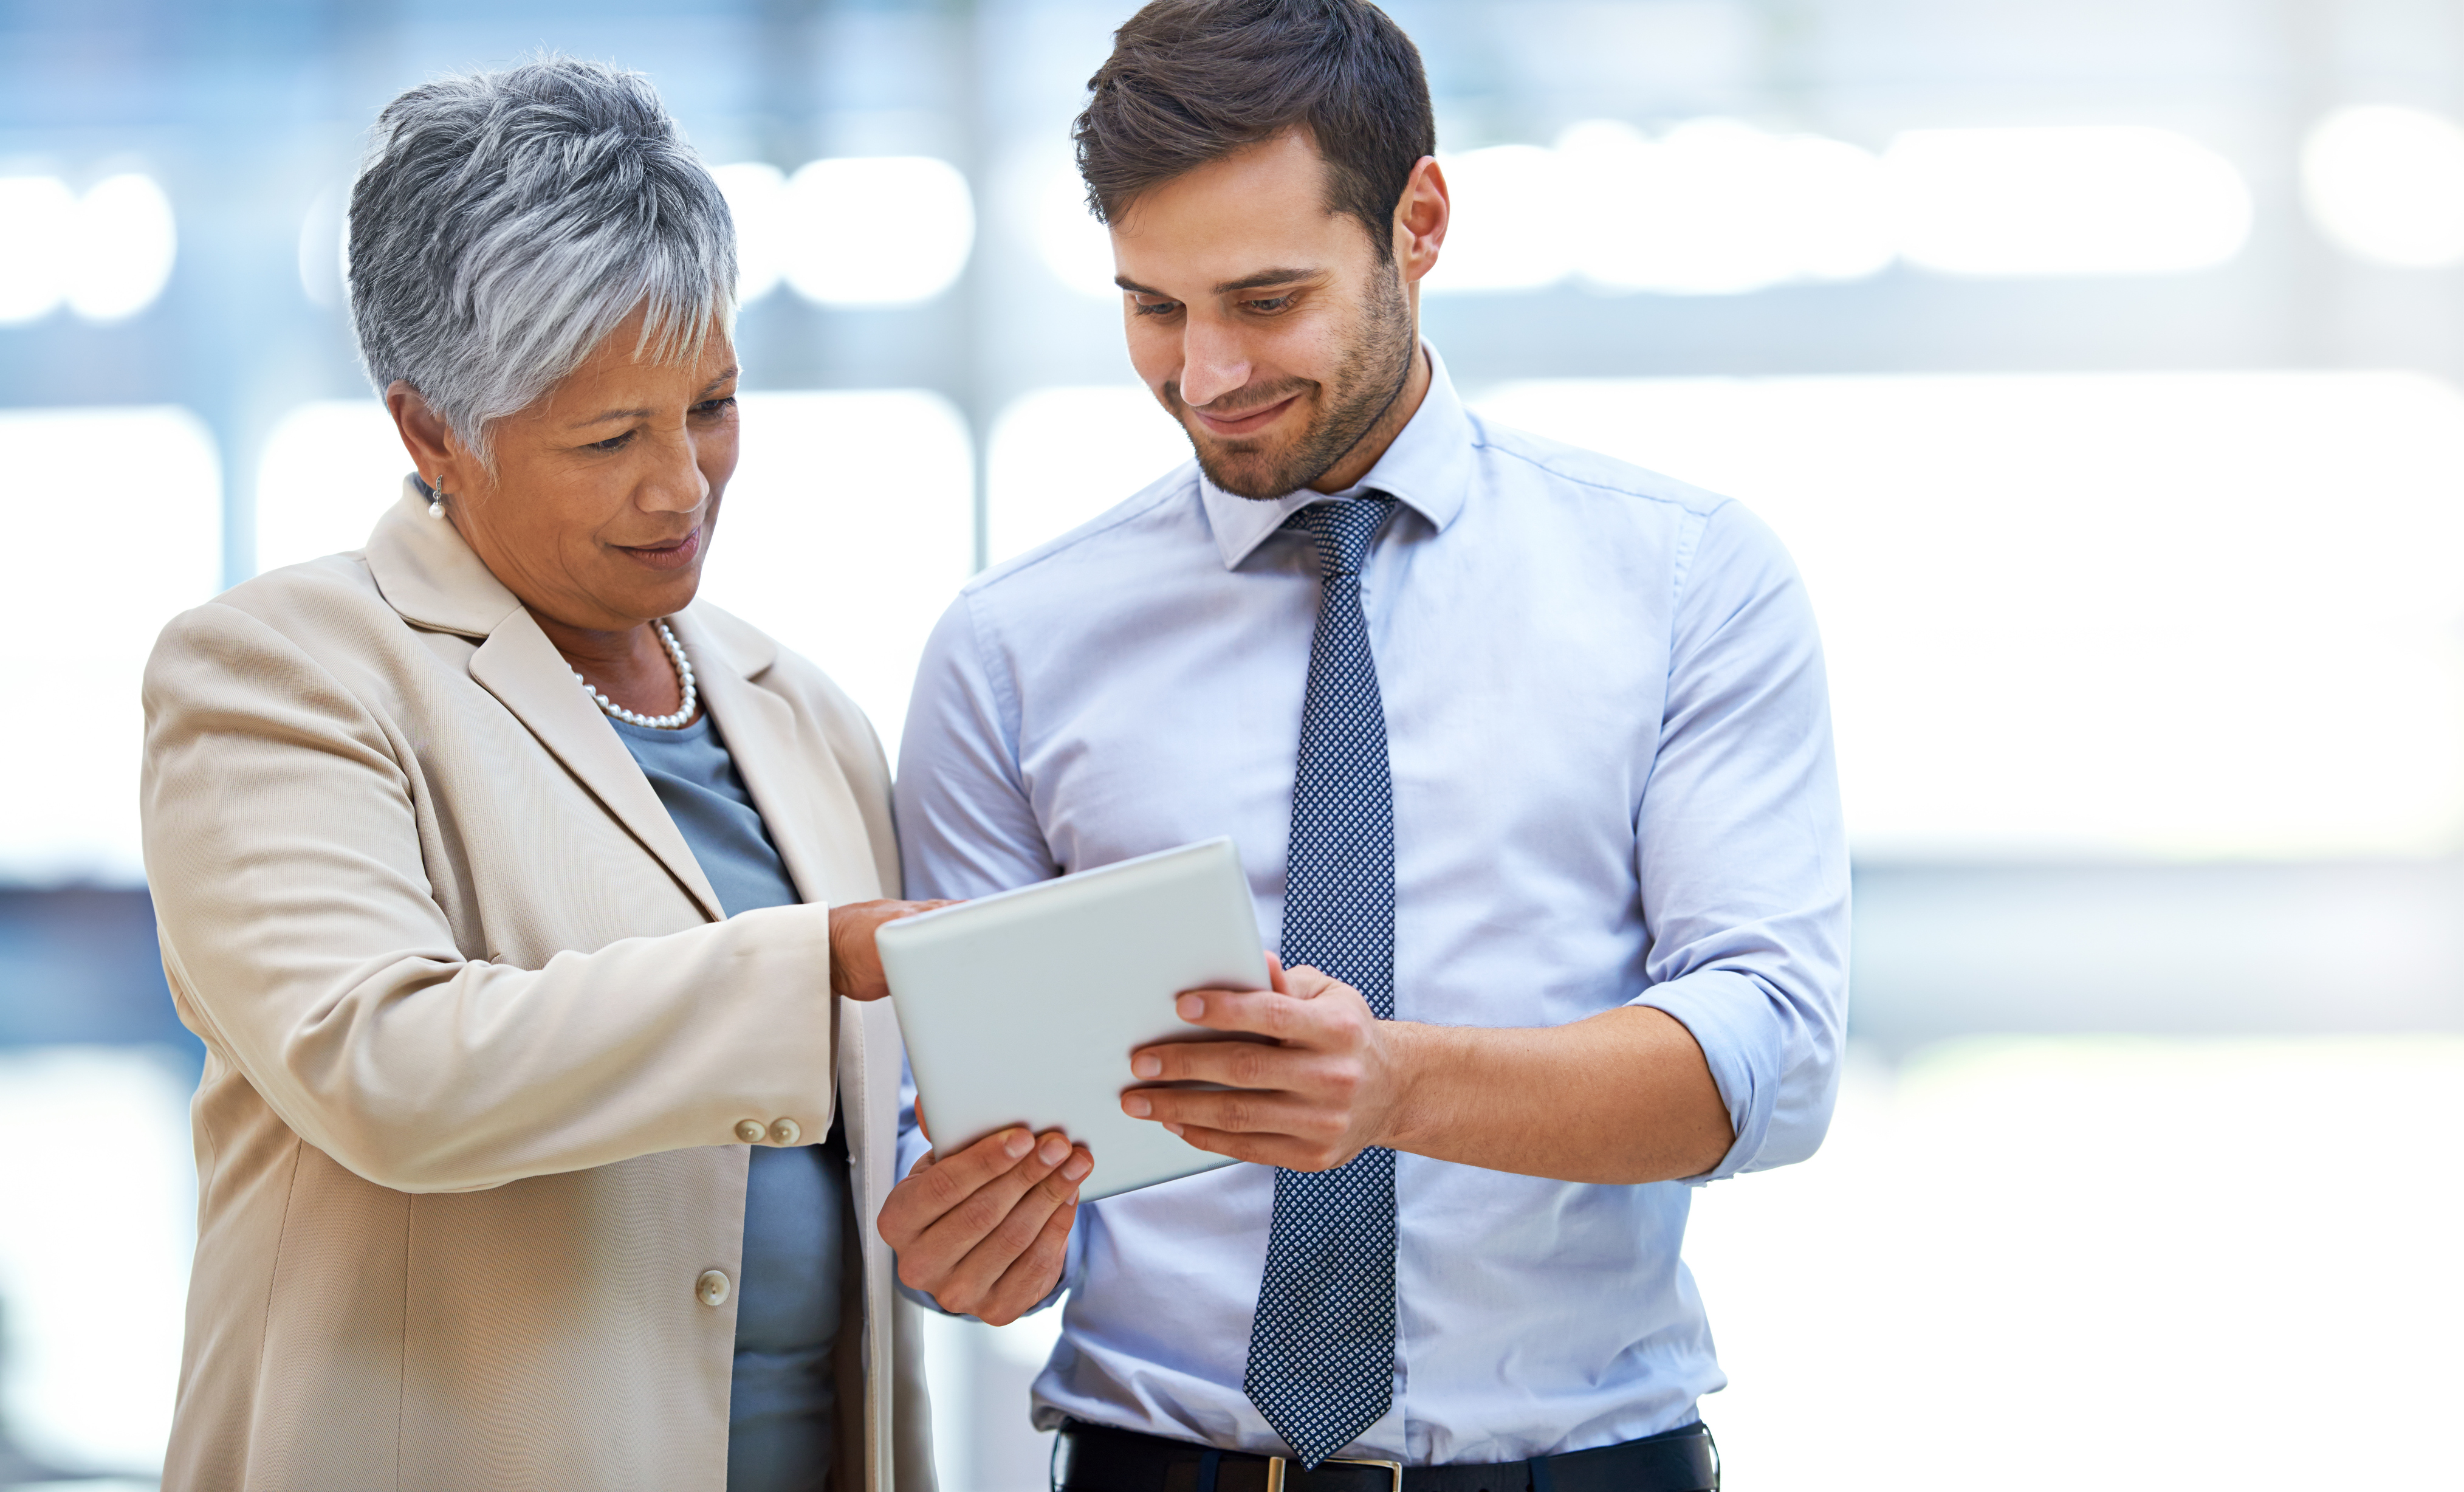 Two business people discussing a transaction using a tablet.